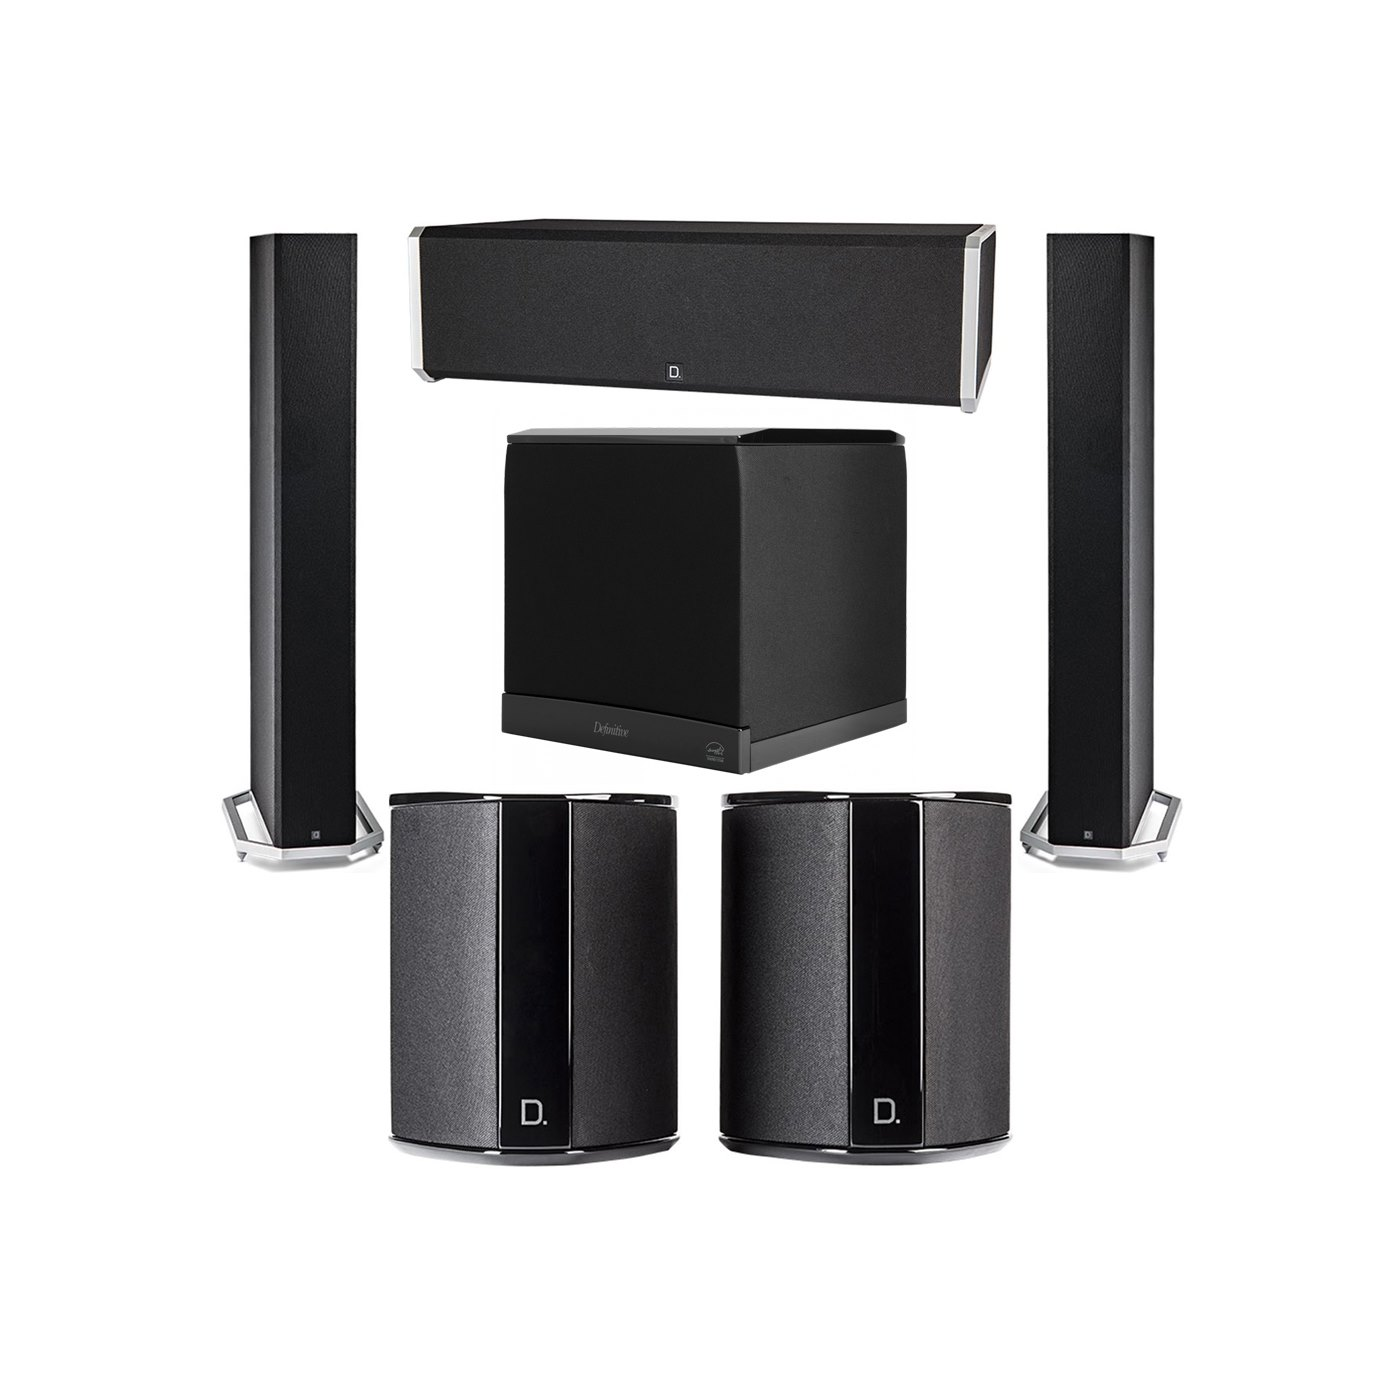 Definitive Technology 5.1 System with 2 BP9060 Tower Speakers, 1 CS9040 Center Channel Speaker, 2 SR9040 Surround Speaker, 1 Definitive Technology SuperCube 6000 Powered Subwoofer